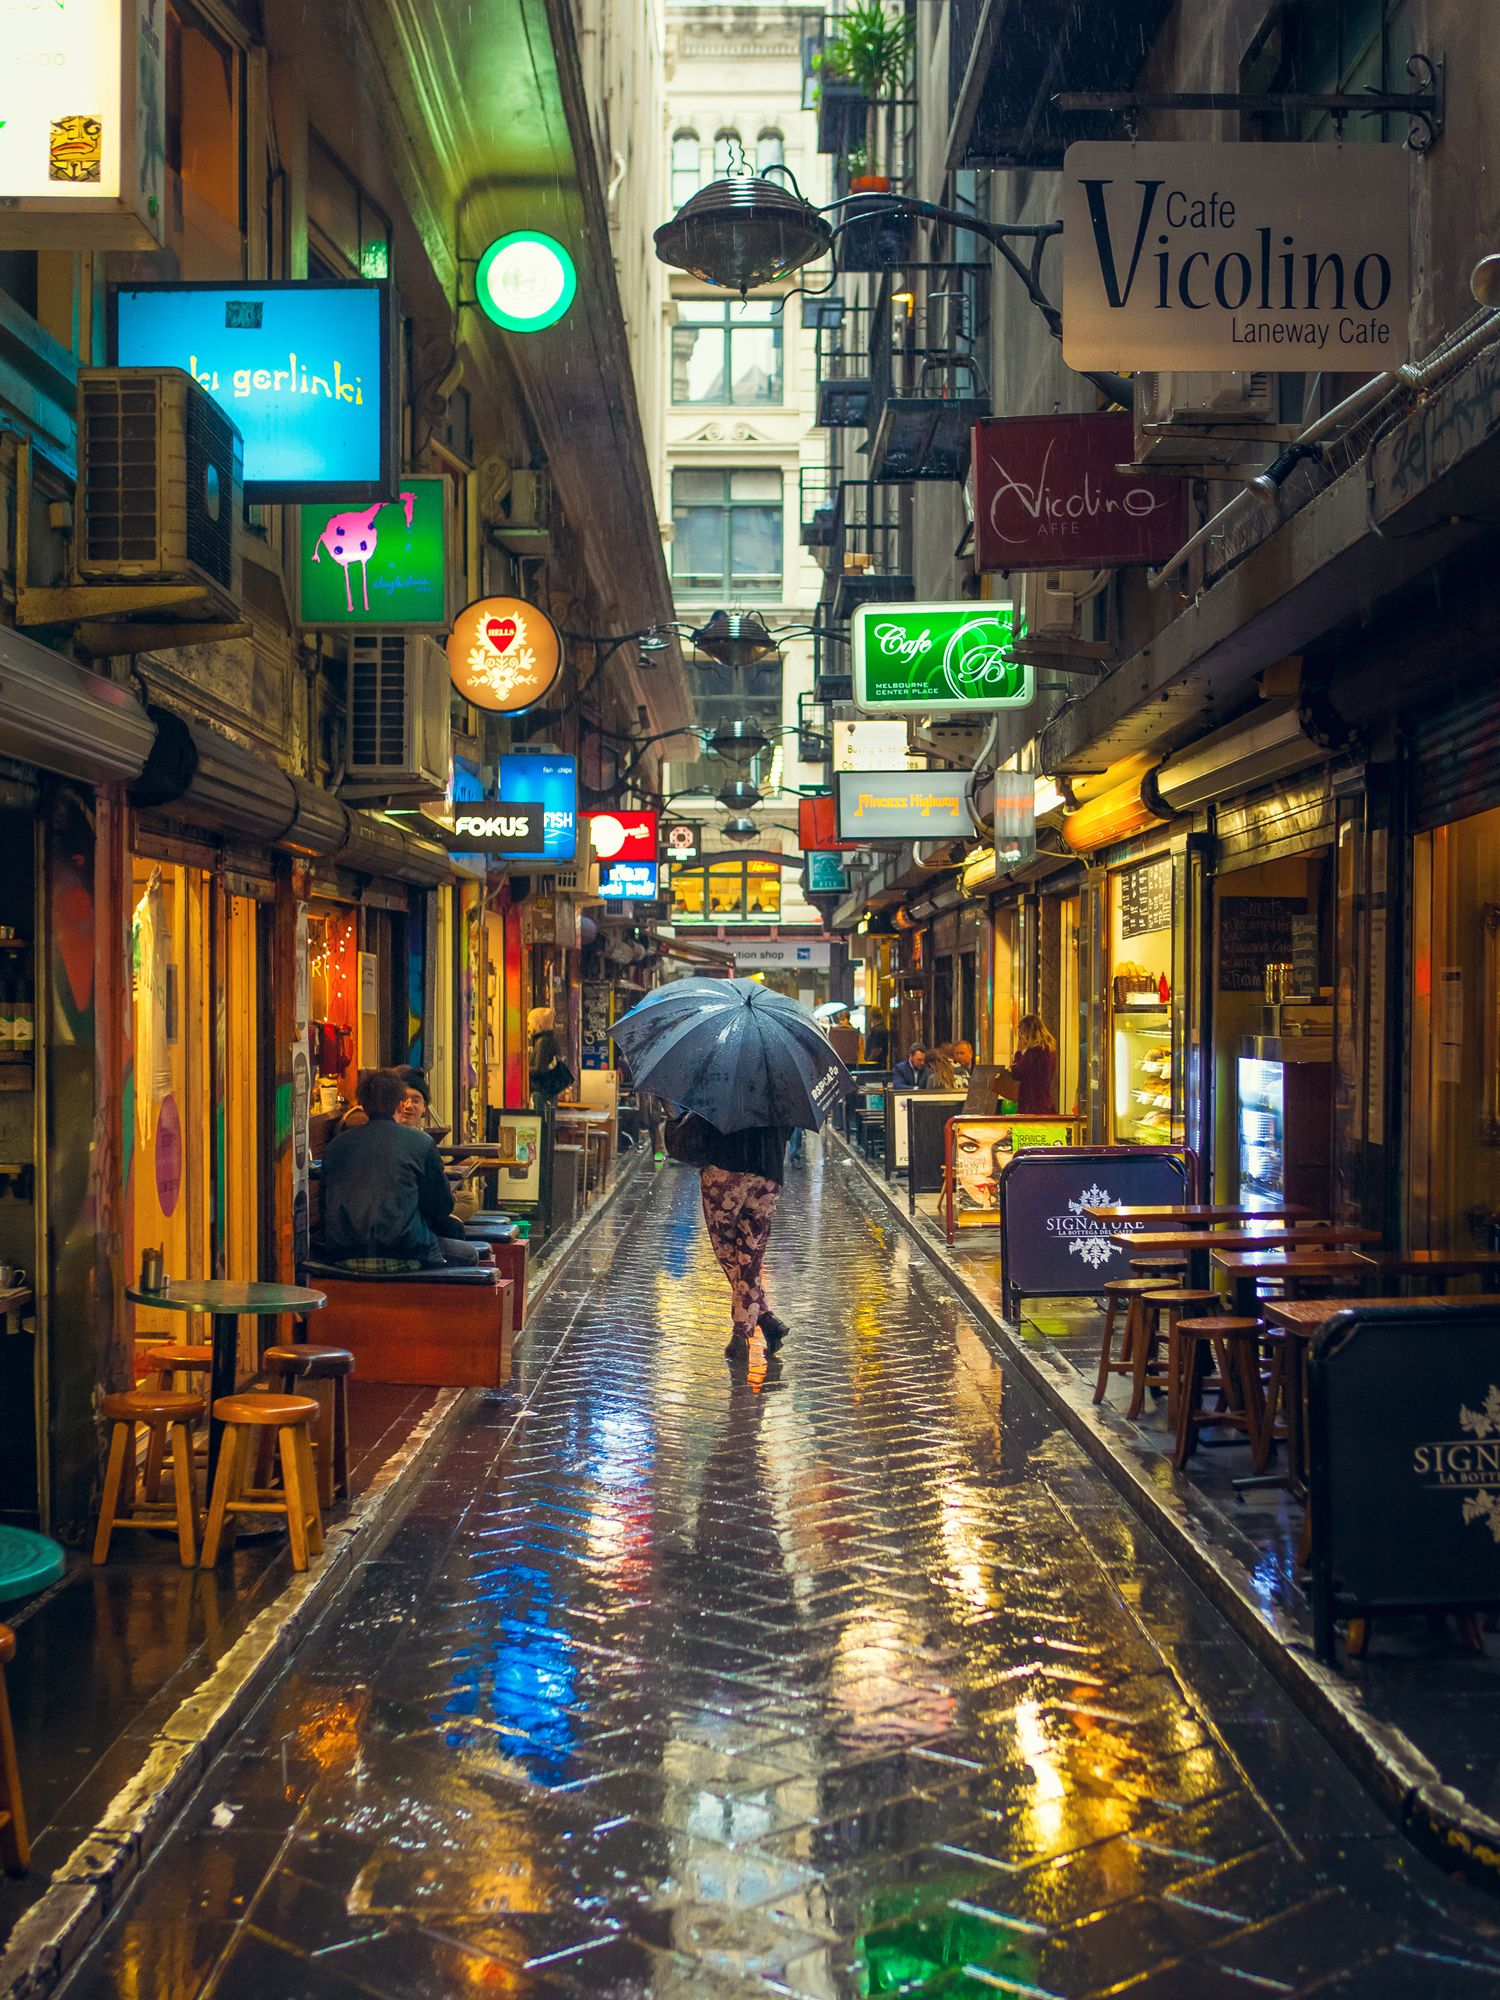 I Spent Countless Hours Capturing The Vibrant Streets Of Melbourne Australia With Images Melbourne Melbourne Laneways Australia